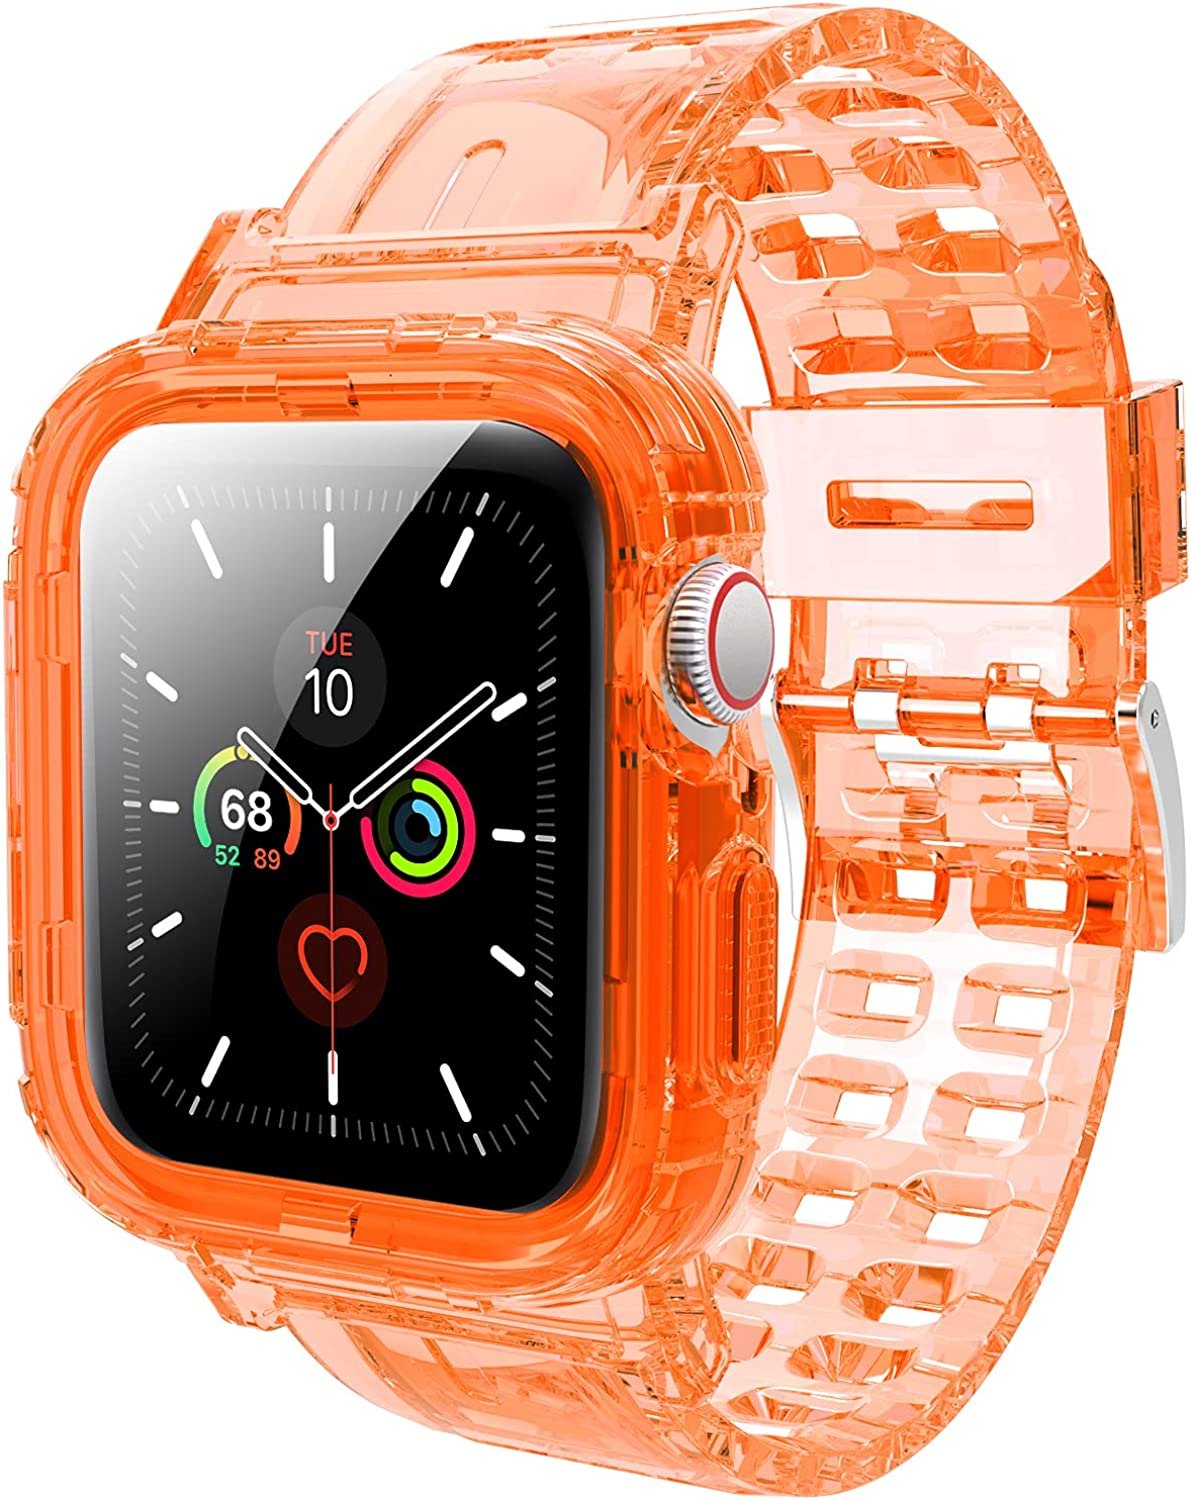 JXVM Band Designed for Apple Watch 44mm 42mm, Crystal Clear Men Women Sporty Protective Bumper Case with Premium Soft TPU Adjustable Strap Bands for Apple Watch Series 6/5/4/3/2